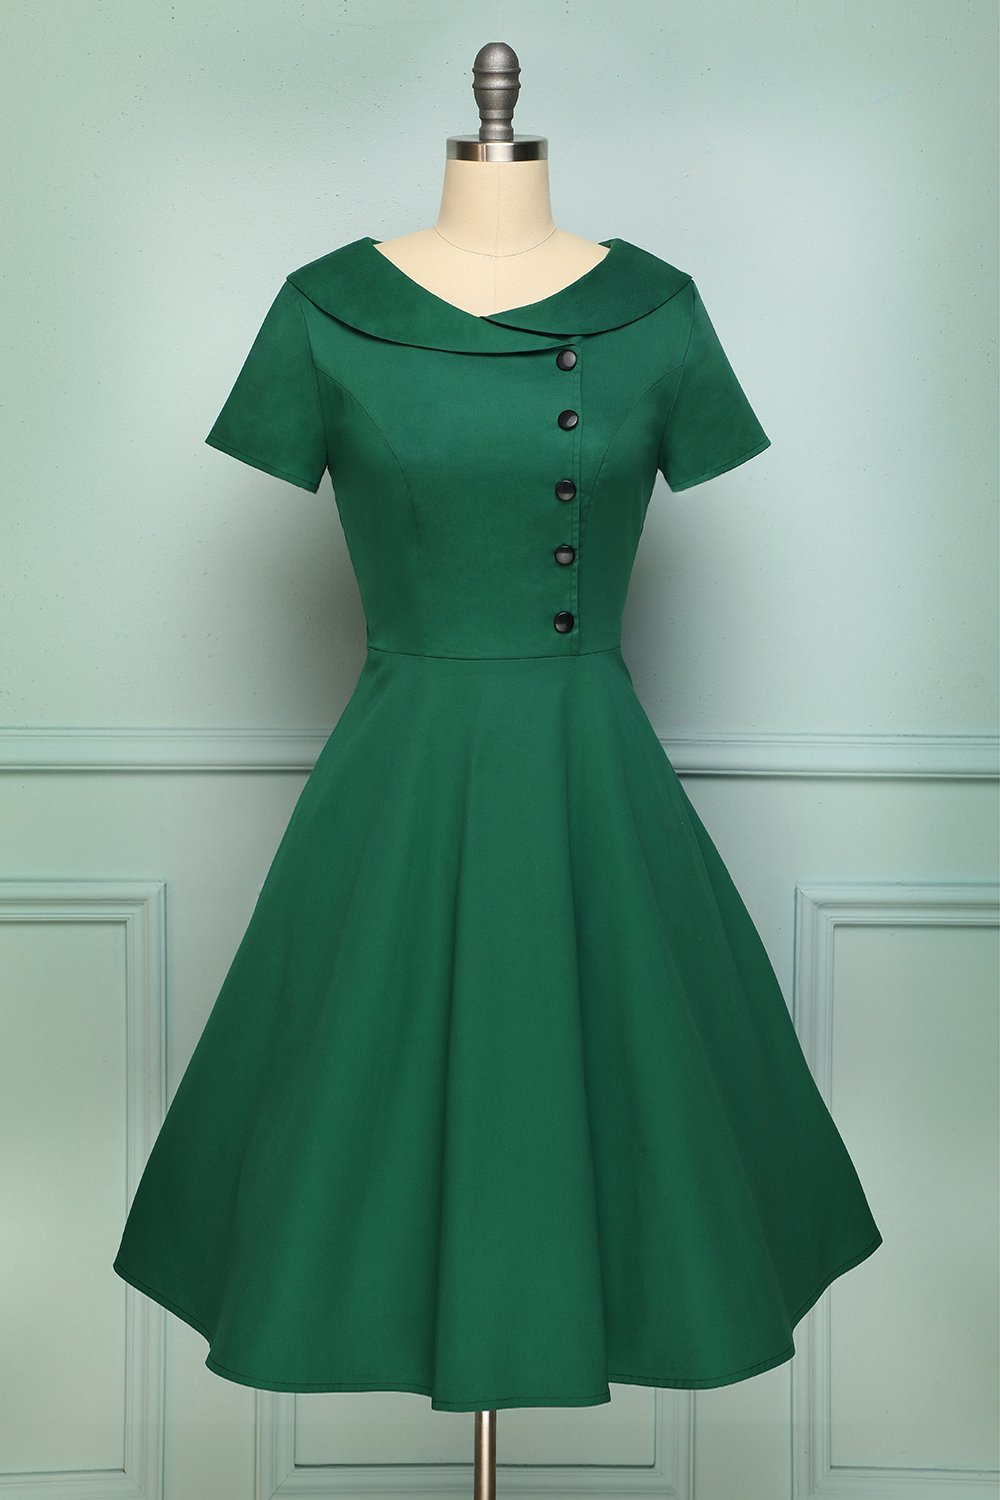 Green Peter Pans Collar A Line Button Up Swing 1950s Dress With Sleeves